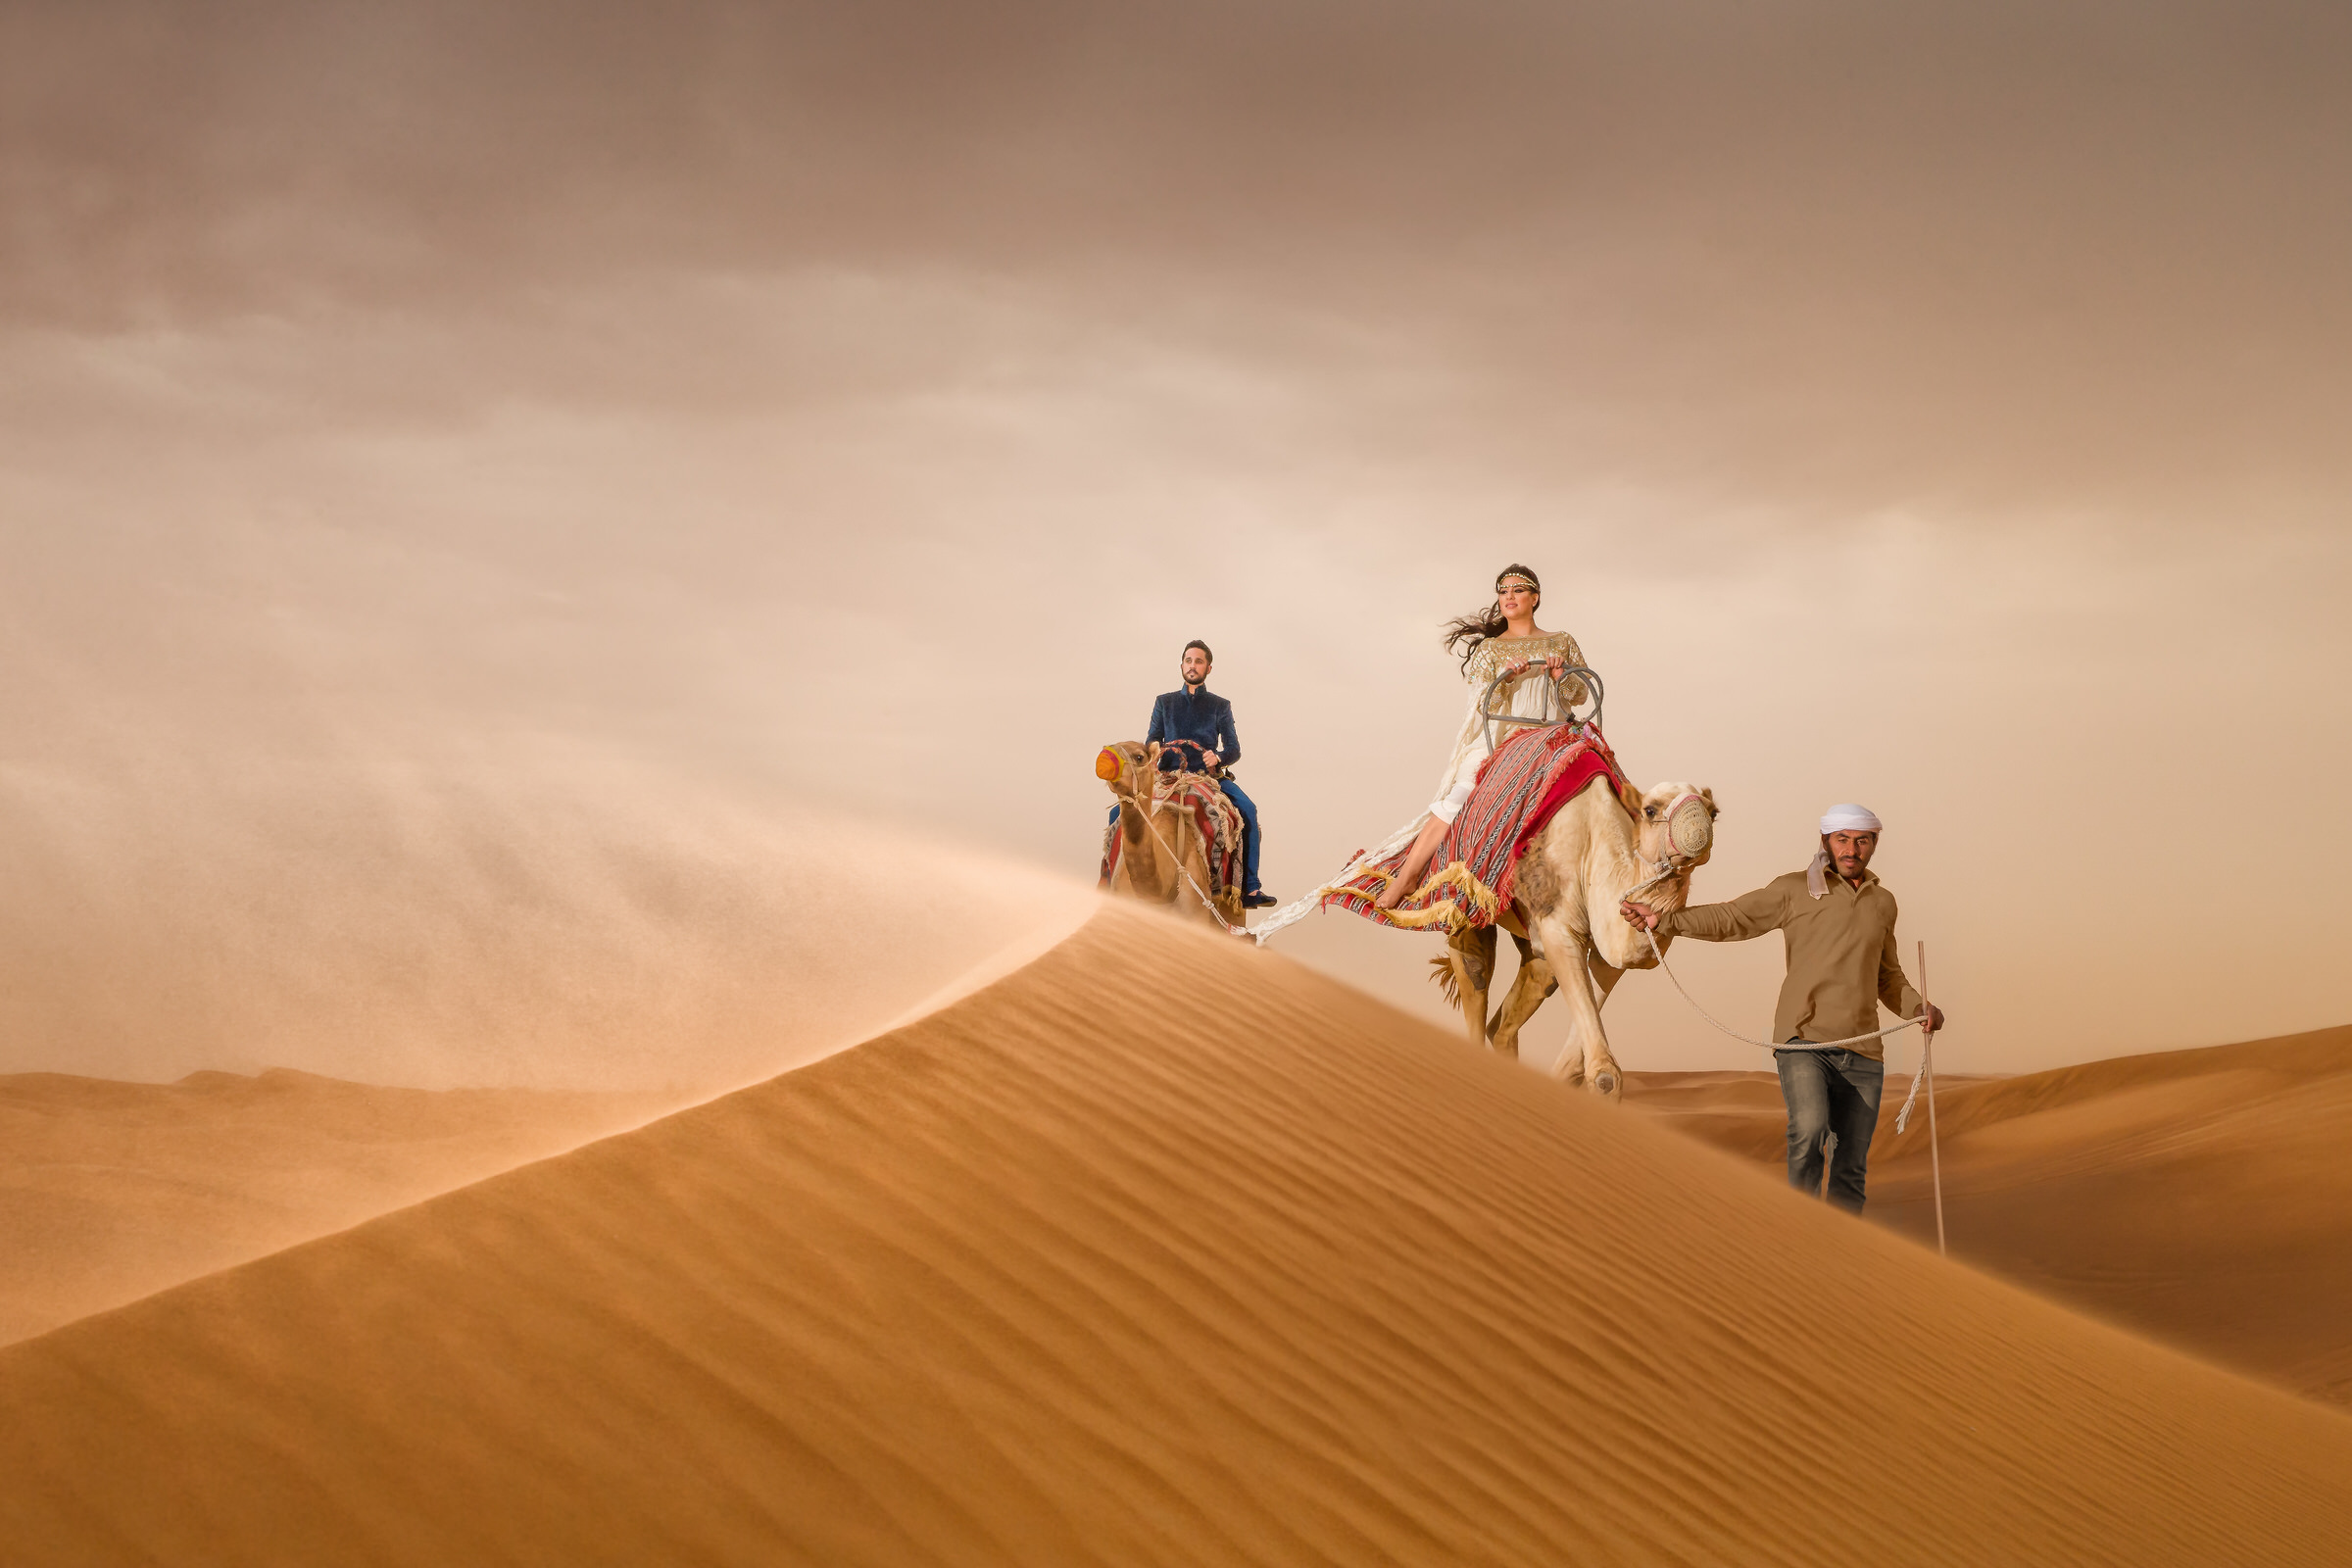 Epic bride and groom portrait on camels on dunes - photo by Eye Jogia Photography